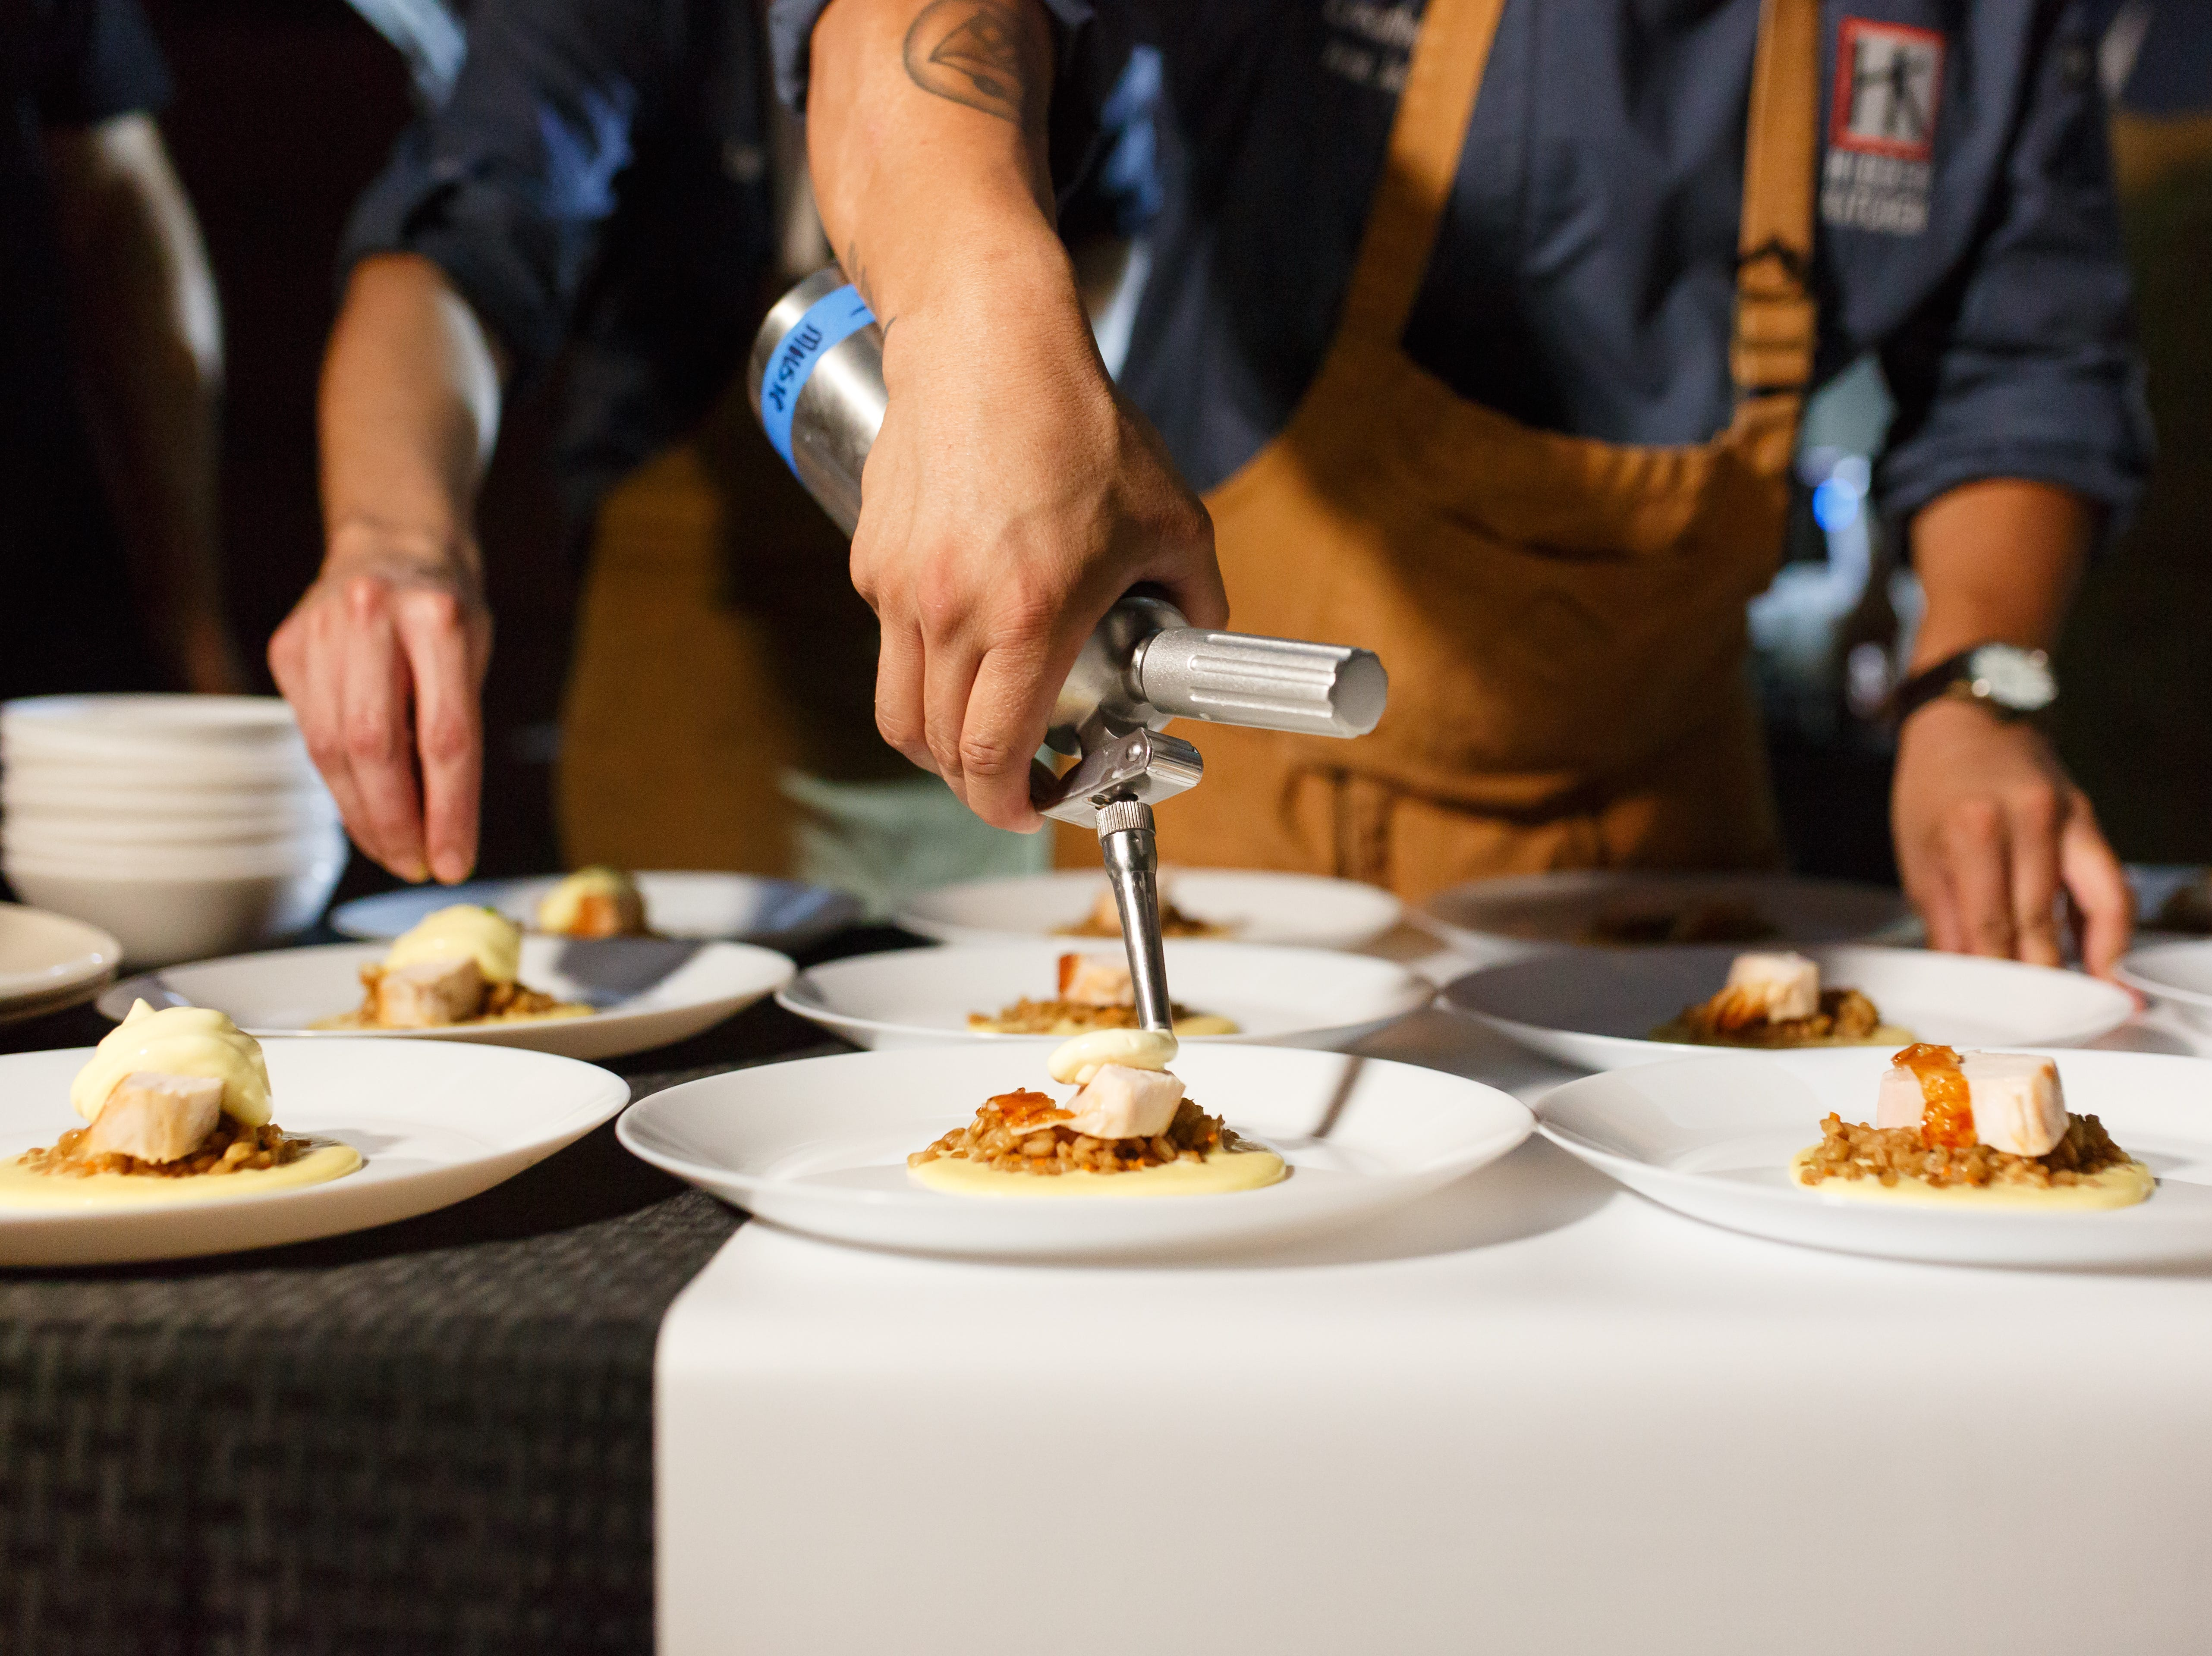 Chef Ivan Jacobo of Hidden Kitchen restaurant in downtown Phoenix has hosted wildly popular pop-up dinner events at venues around Phoenix for the last three years.